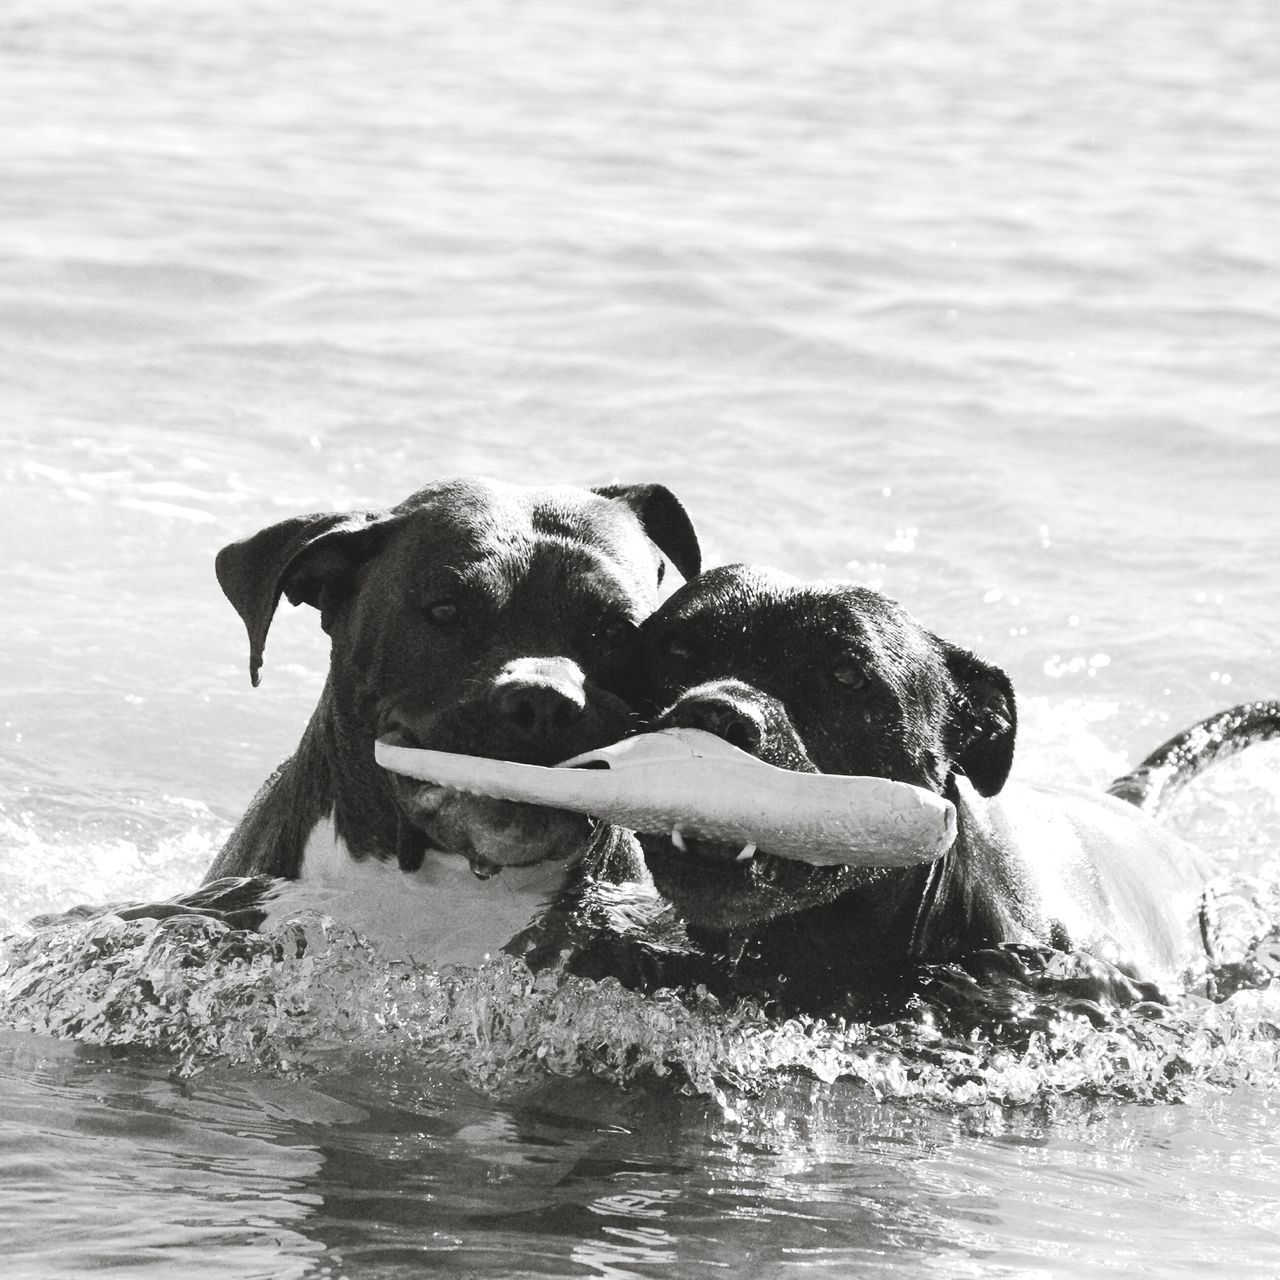 Juegos en el mar Pitbullove Surf Pitbullsofinstagram Pitbullsofficial Dogmodels Pitbull Dog Love Vacations Happiness Summer Travel Animal Real People Day Beach Water Doggirl Tranquility Waterfront Nature First Eyeem Photo Mammal Weimaraner One Animal Domestic Animals